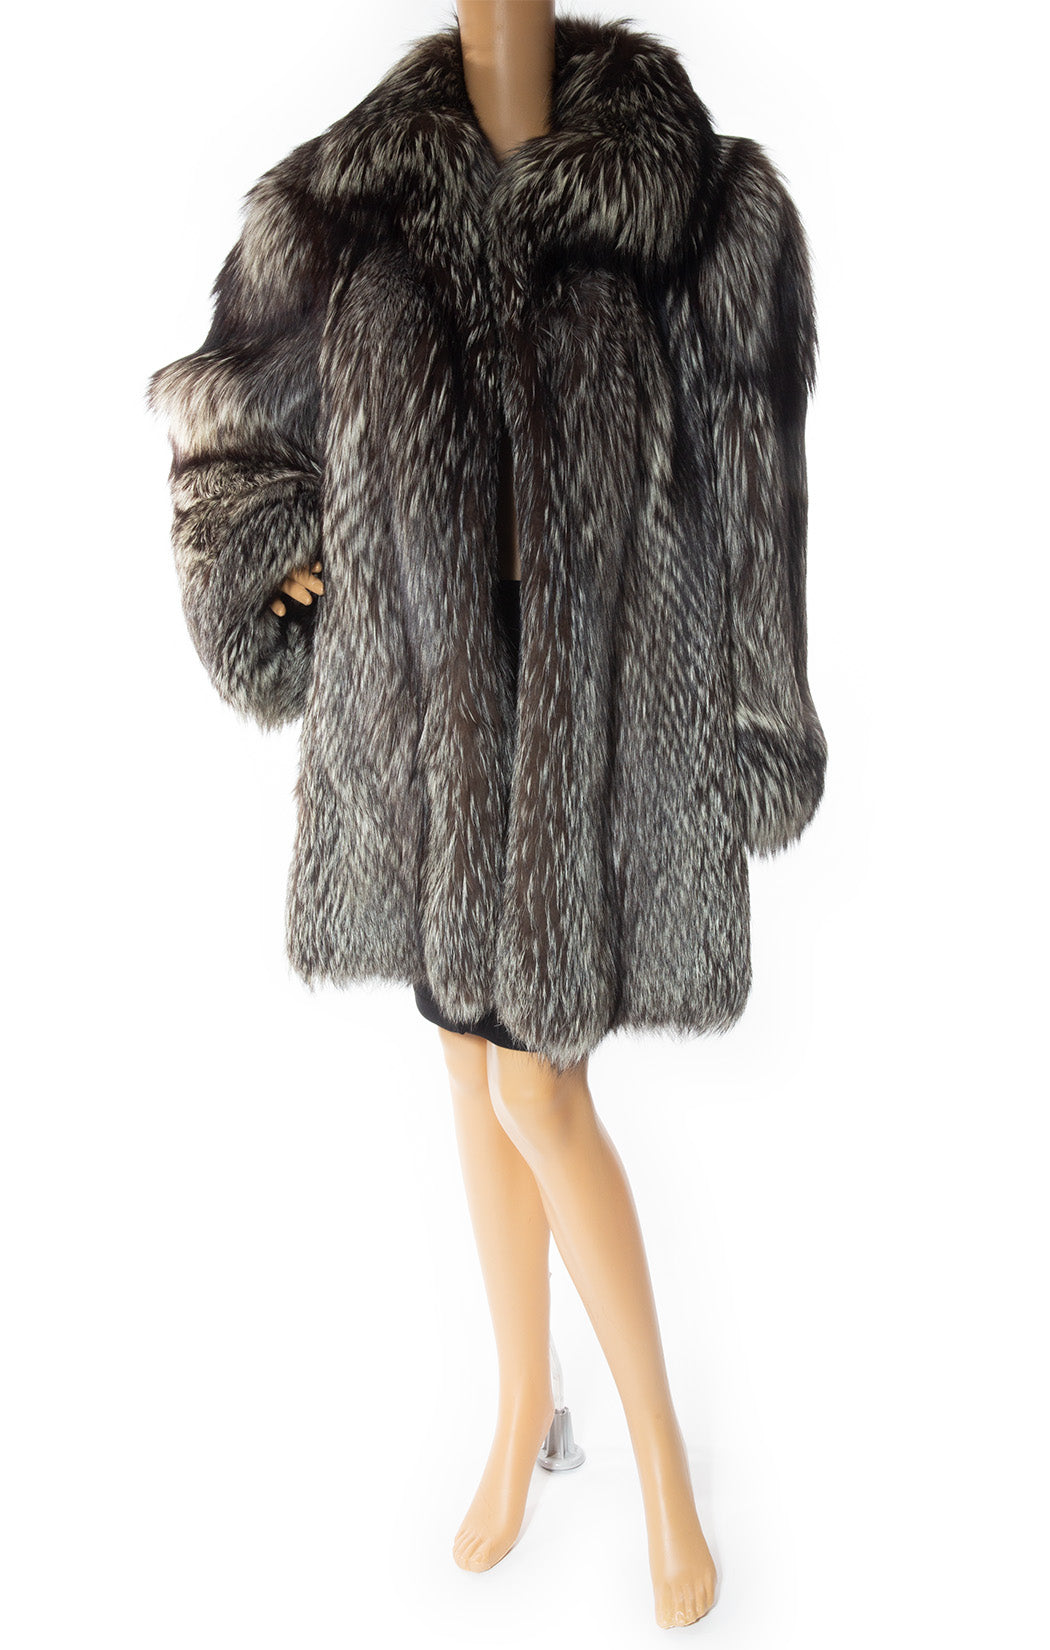 Front view of CHRISTIAN DIOR Vintage Fox fur coat Size: No tags fits like size 8